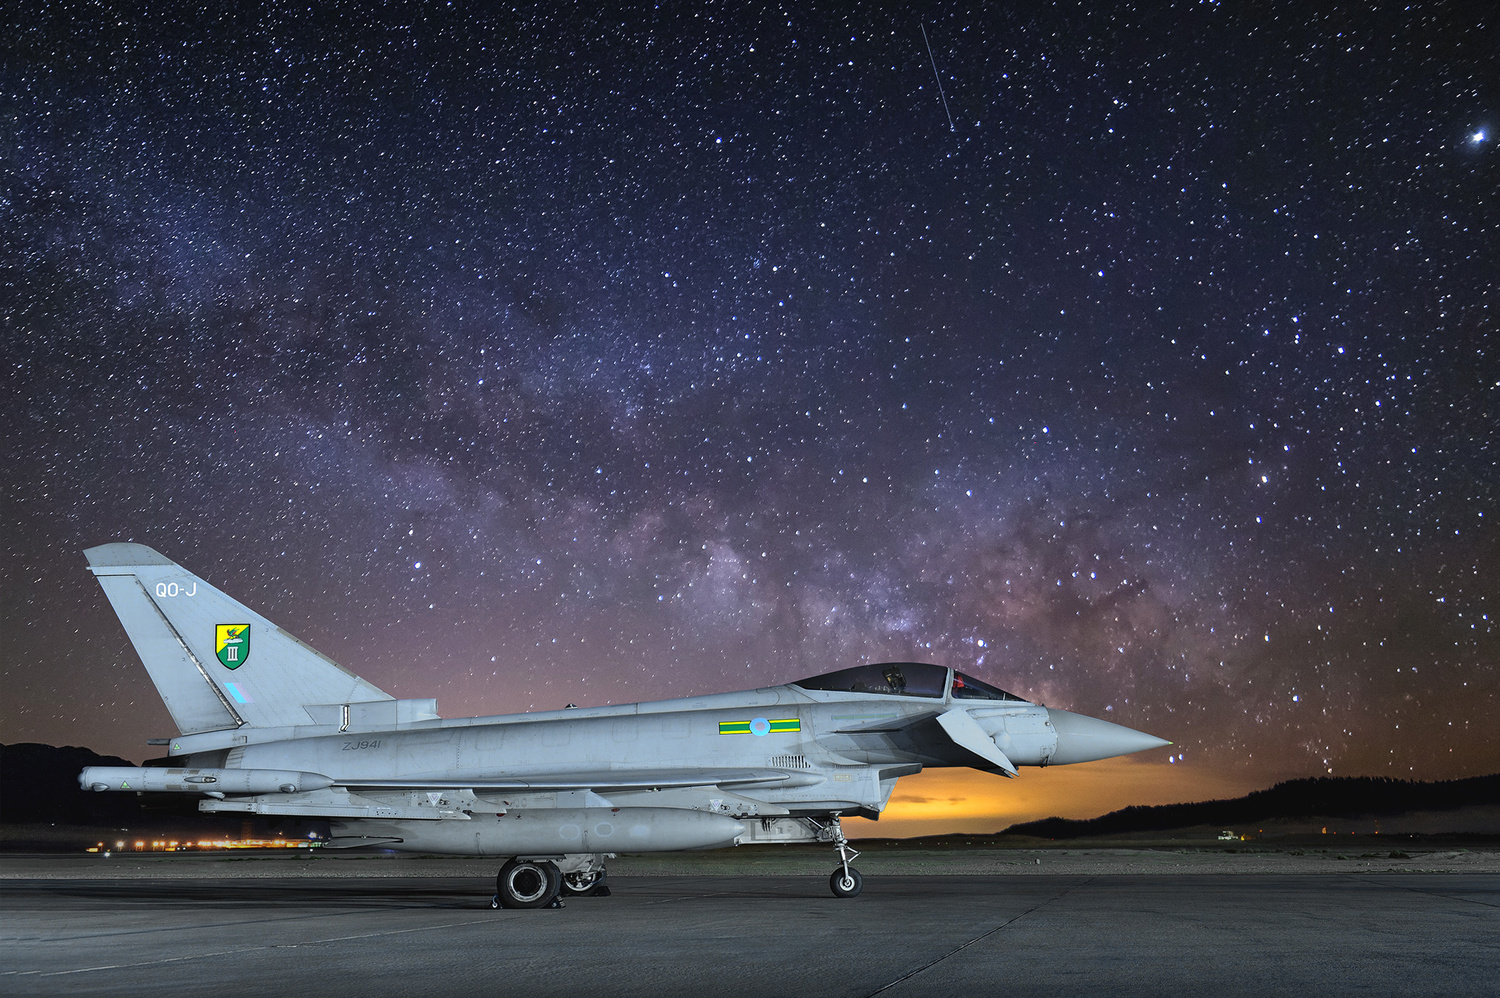 Typhoon under the stars by Graham Taylor